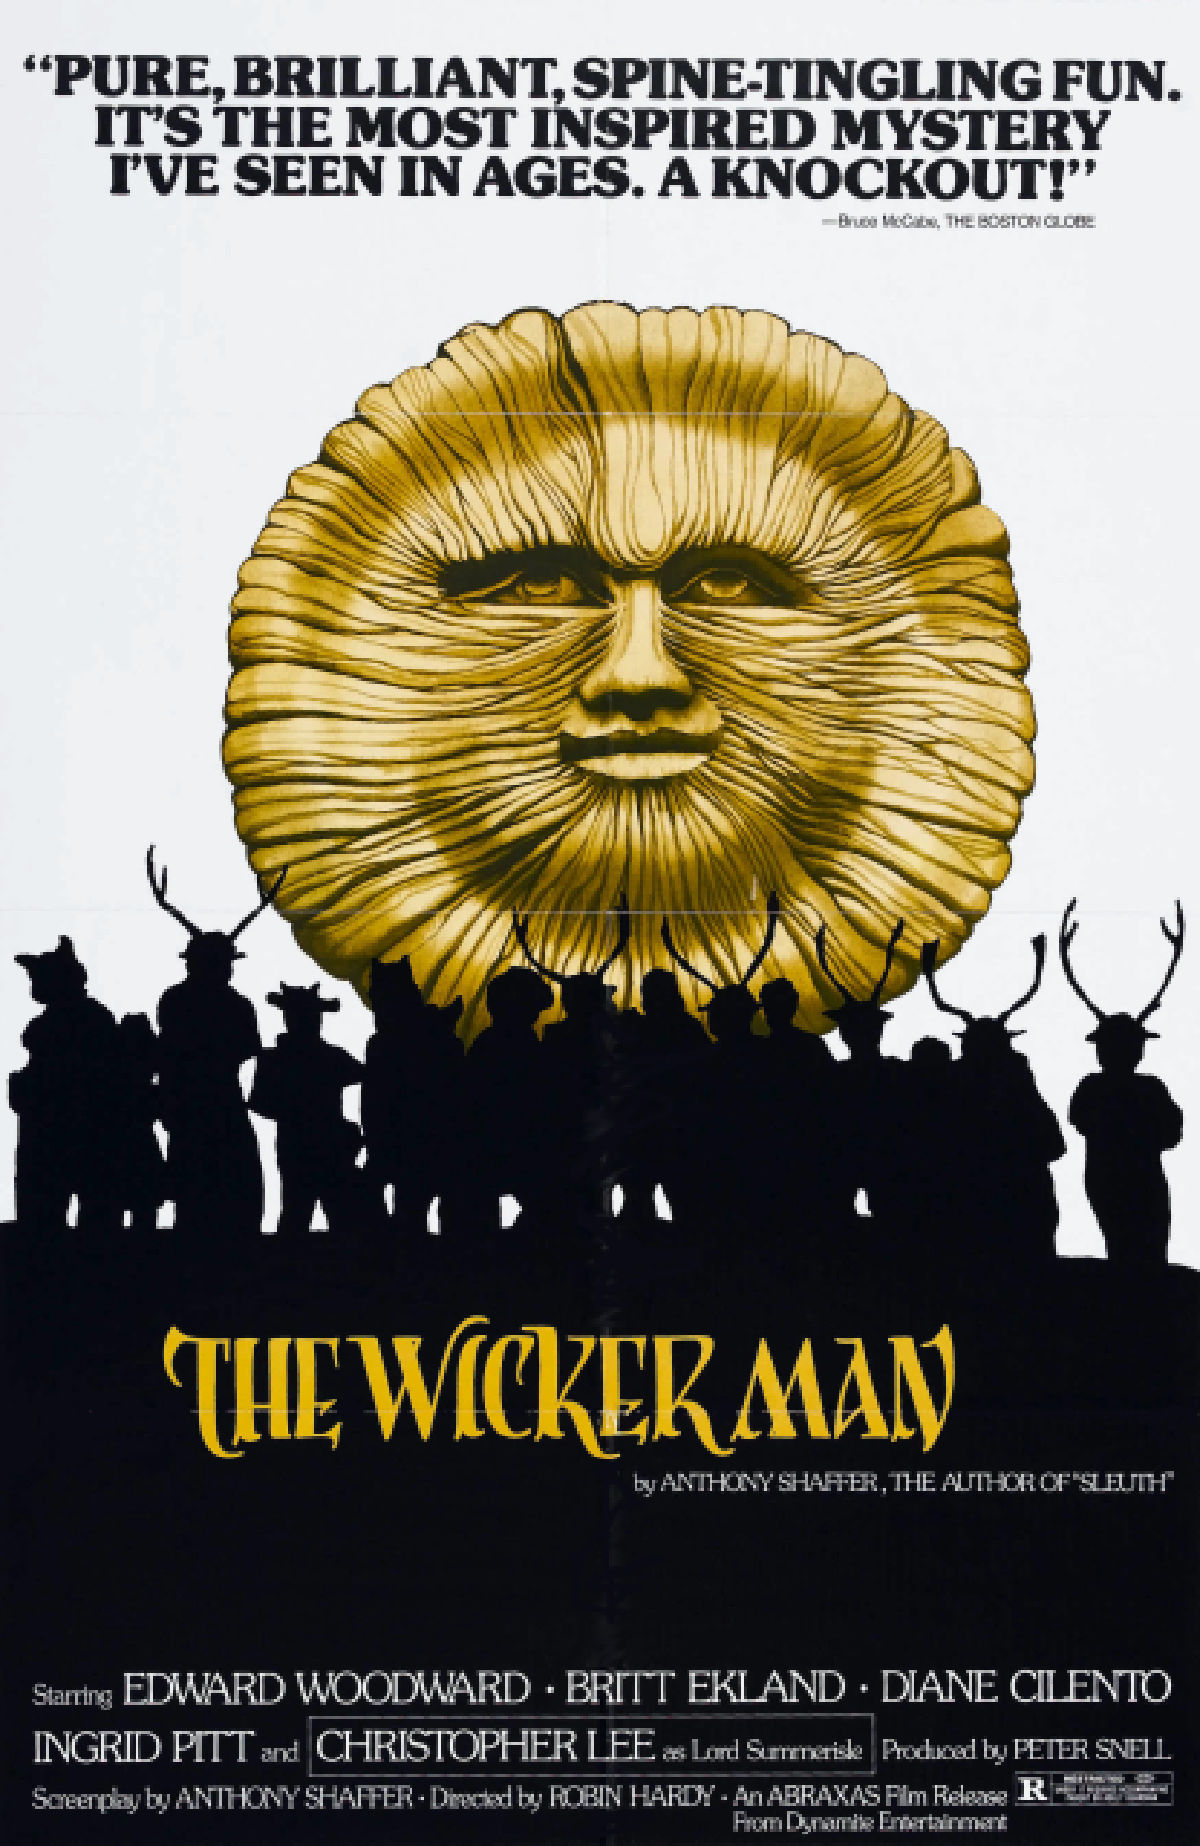 'The Wicker Man' movie poster